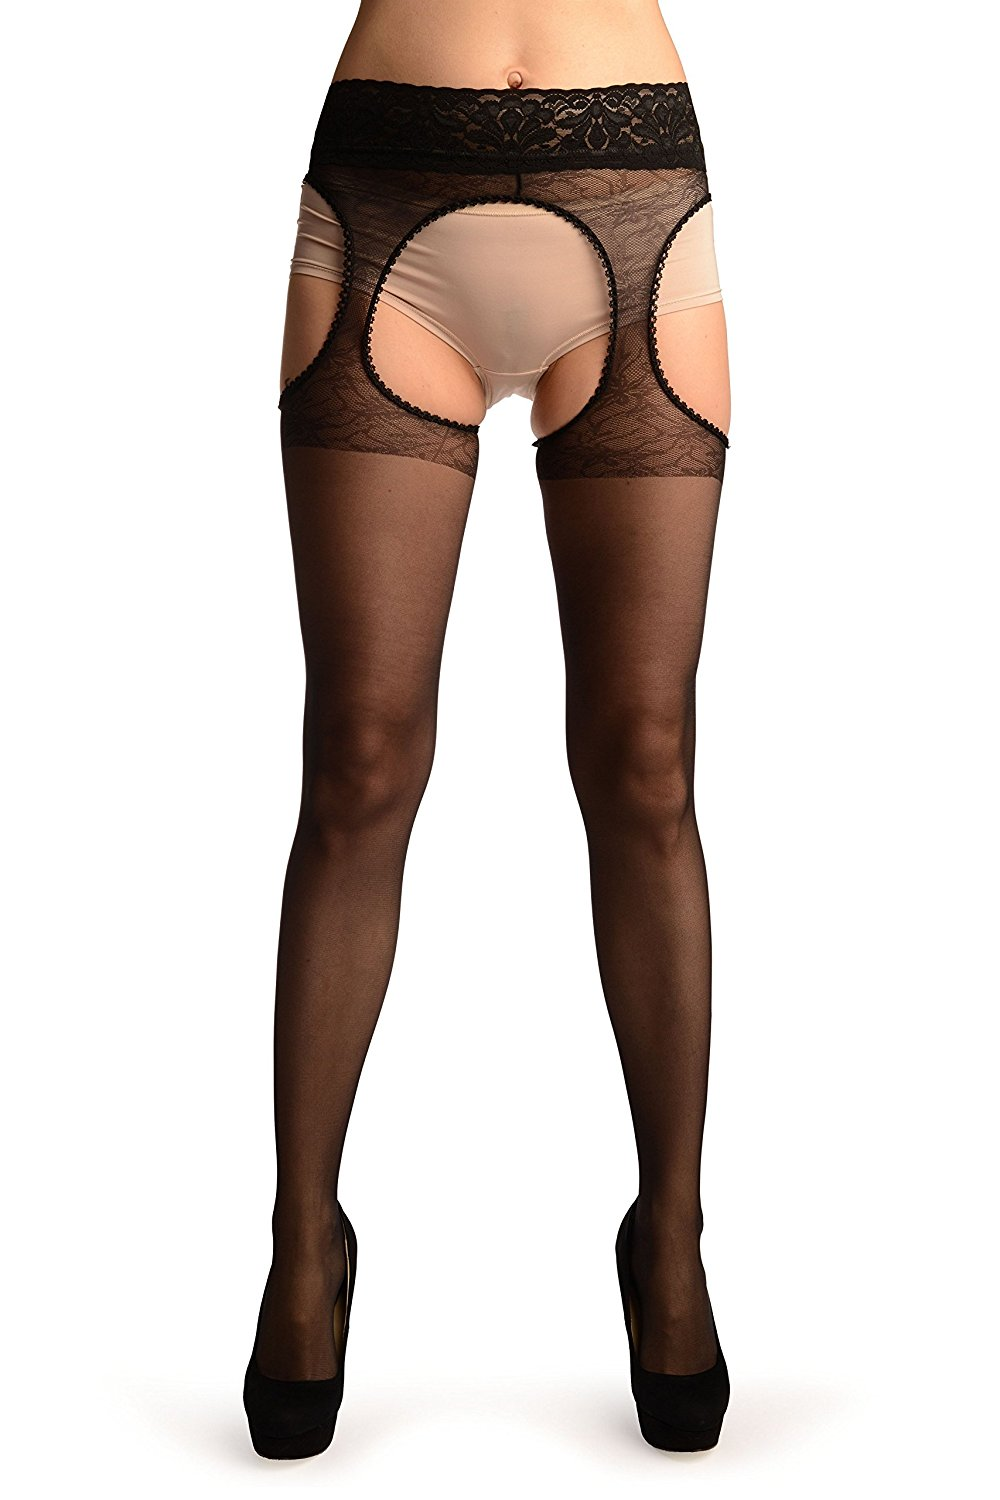 44c42a9985c Get Quotations · Black Suspender Belt With Floral Silicon Lace Top Tights -  Pantyhose (Tights)